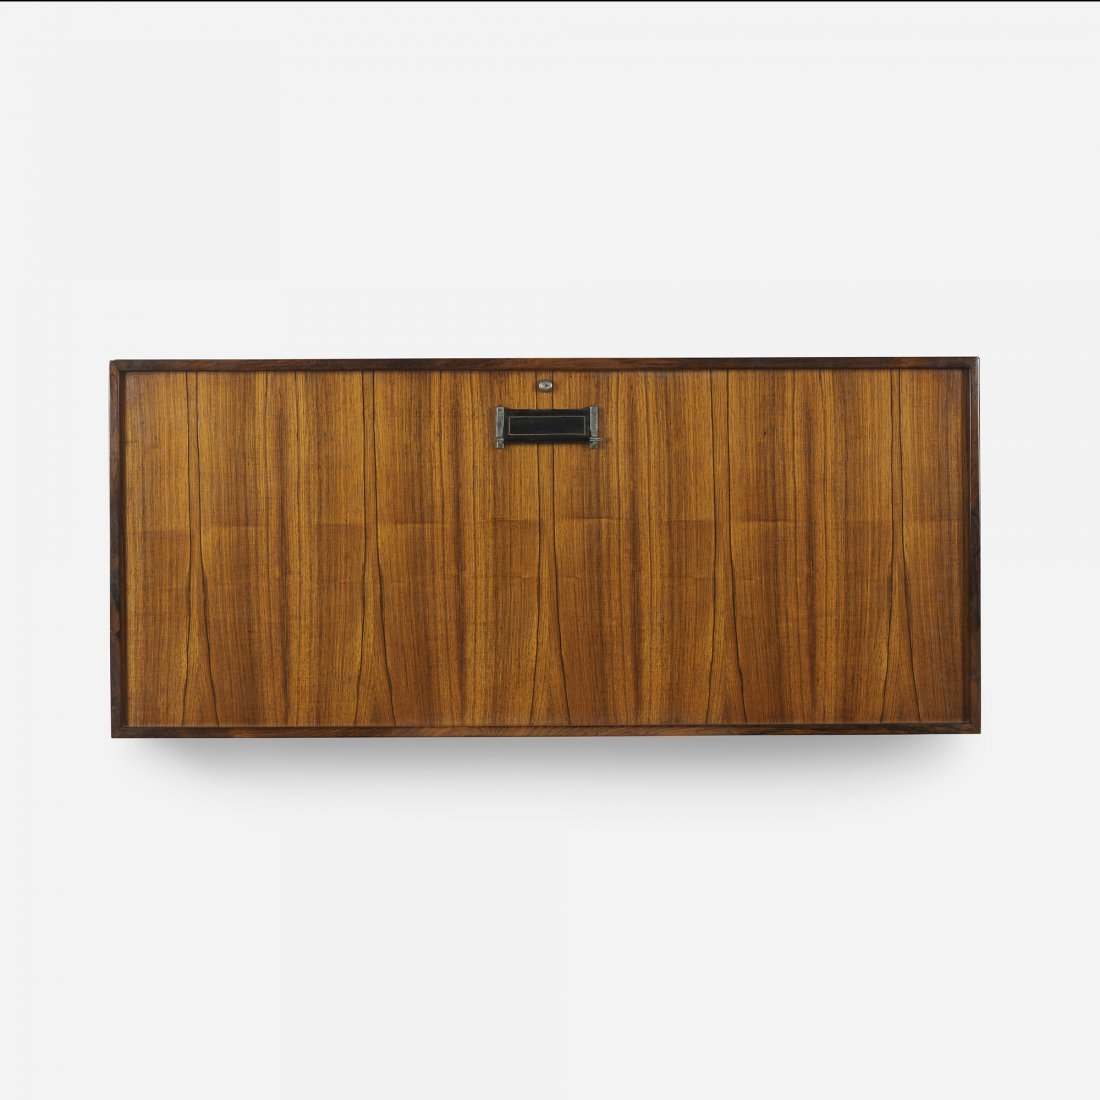 Danish wall-mounted bar cabinet - 2